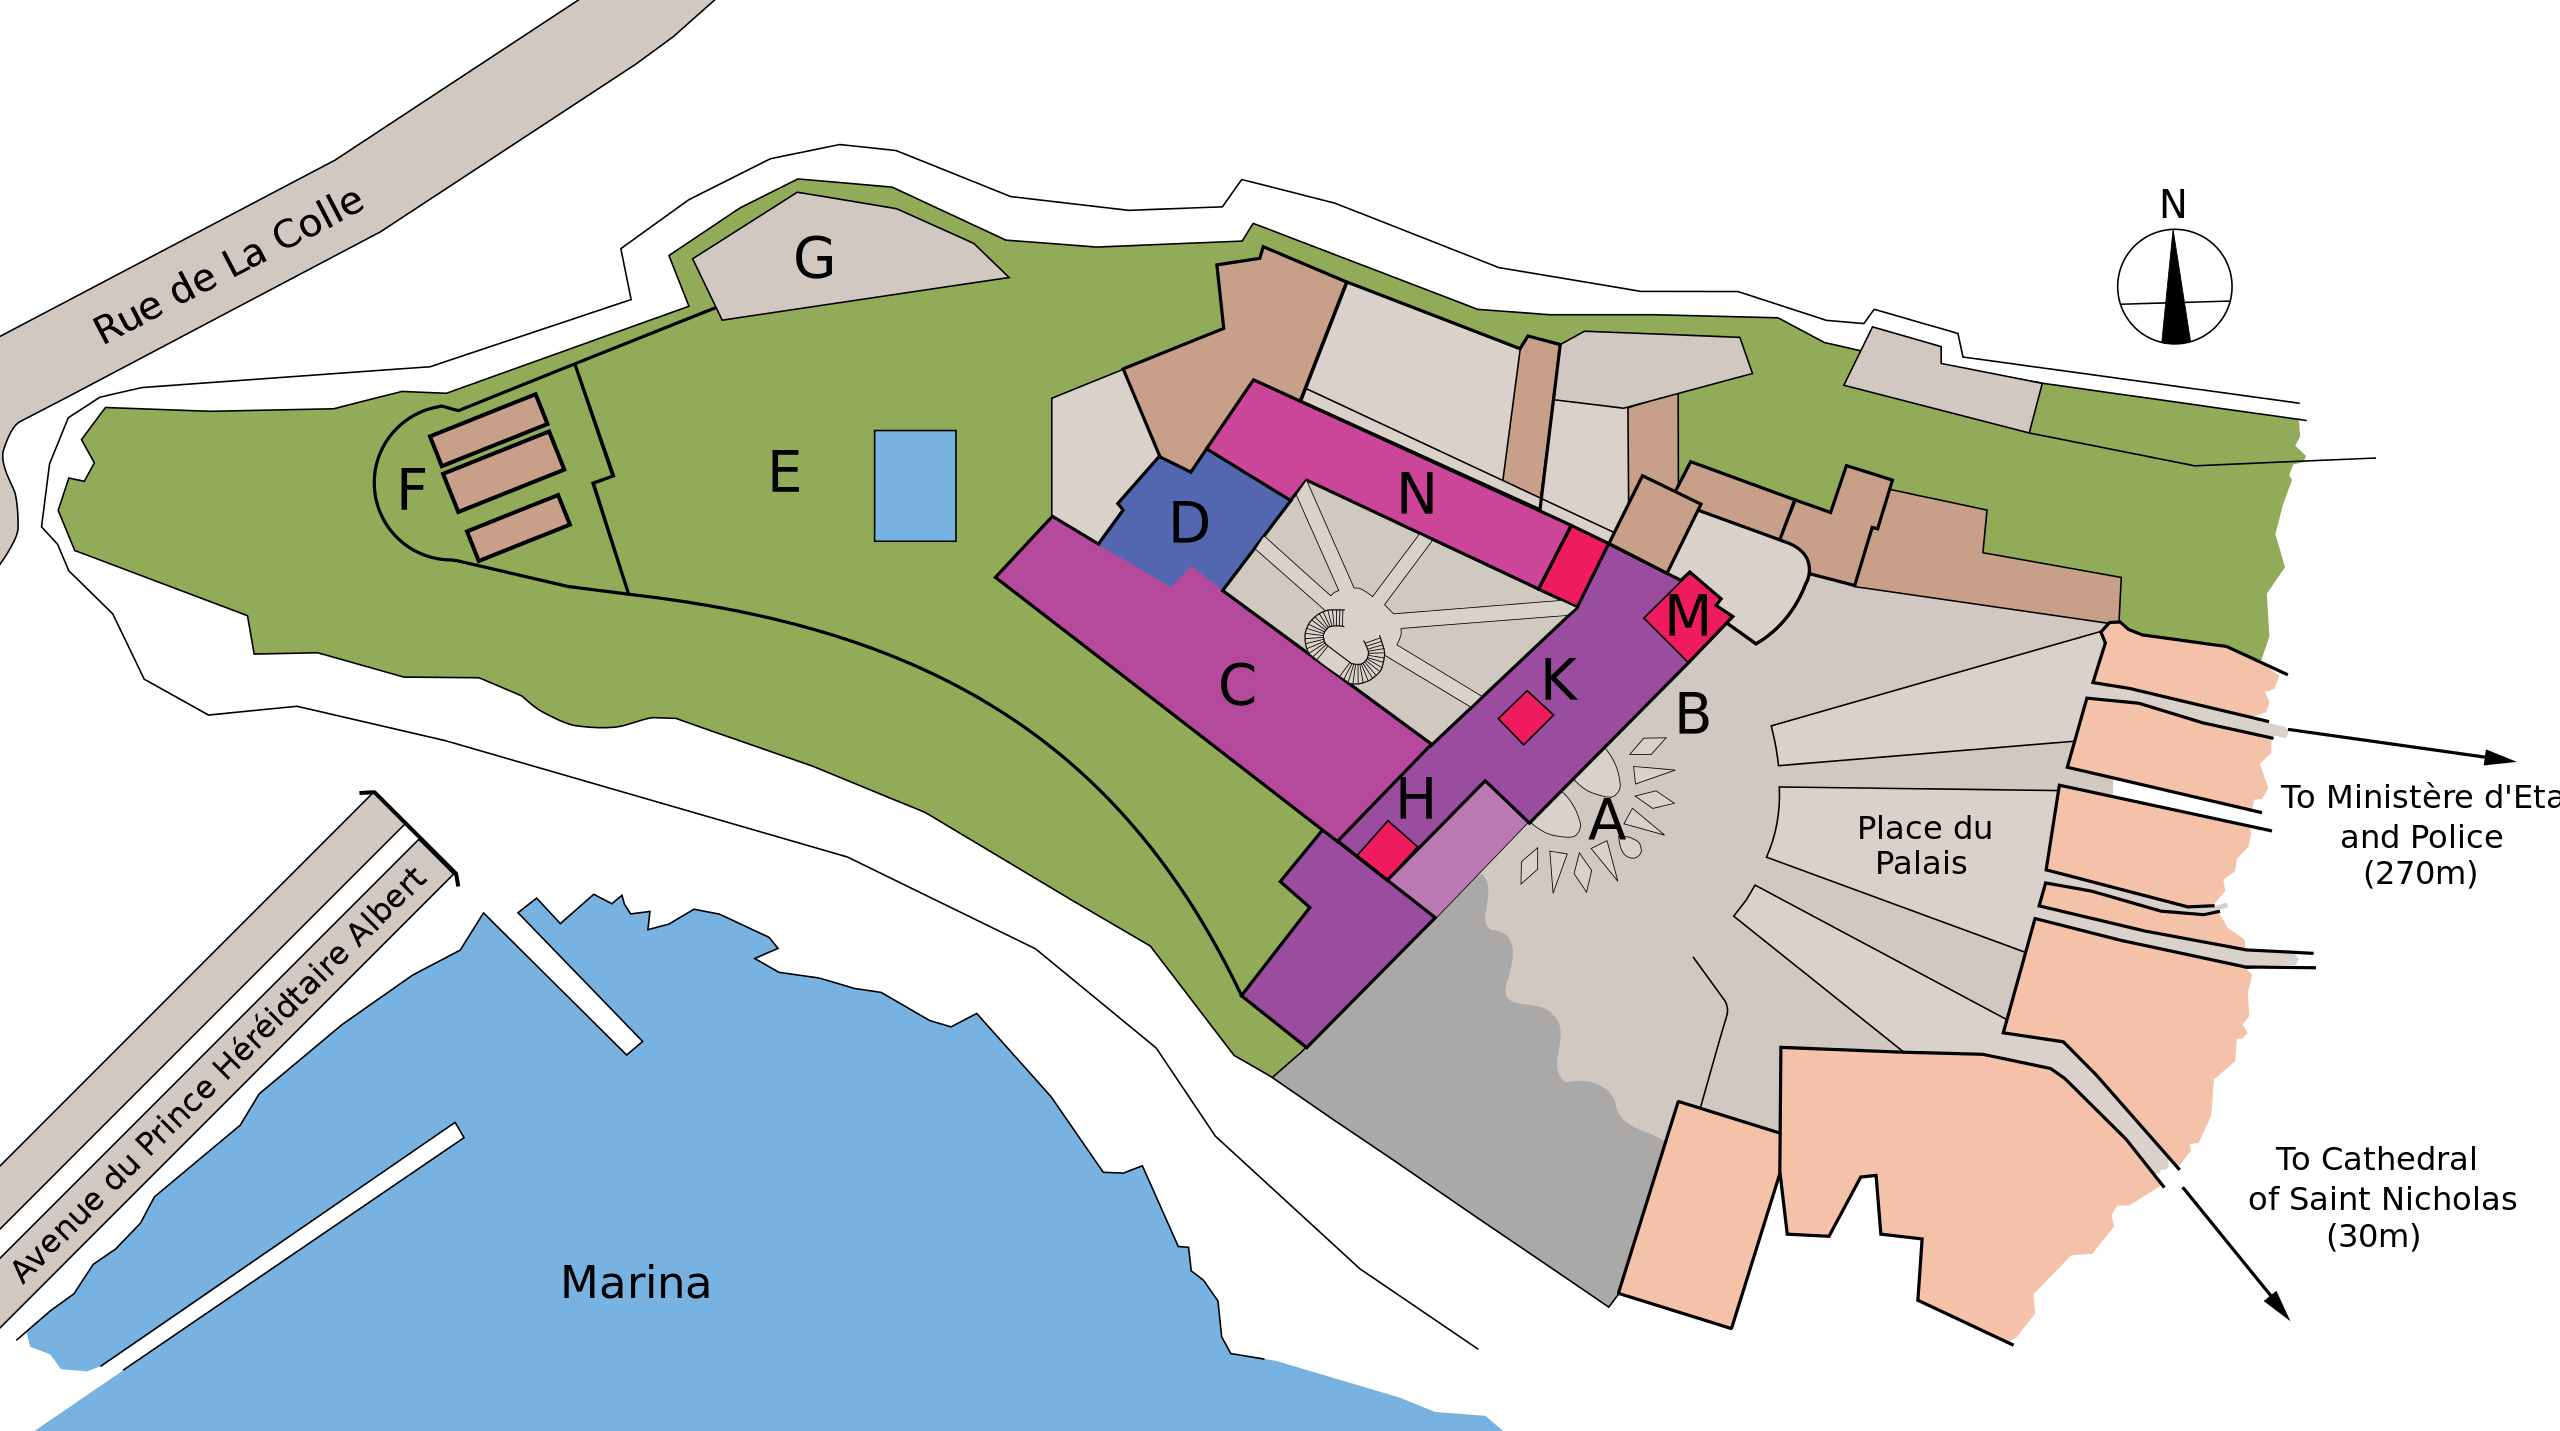 Map of Monaco's Palace by mcginnly (Public Domain)